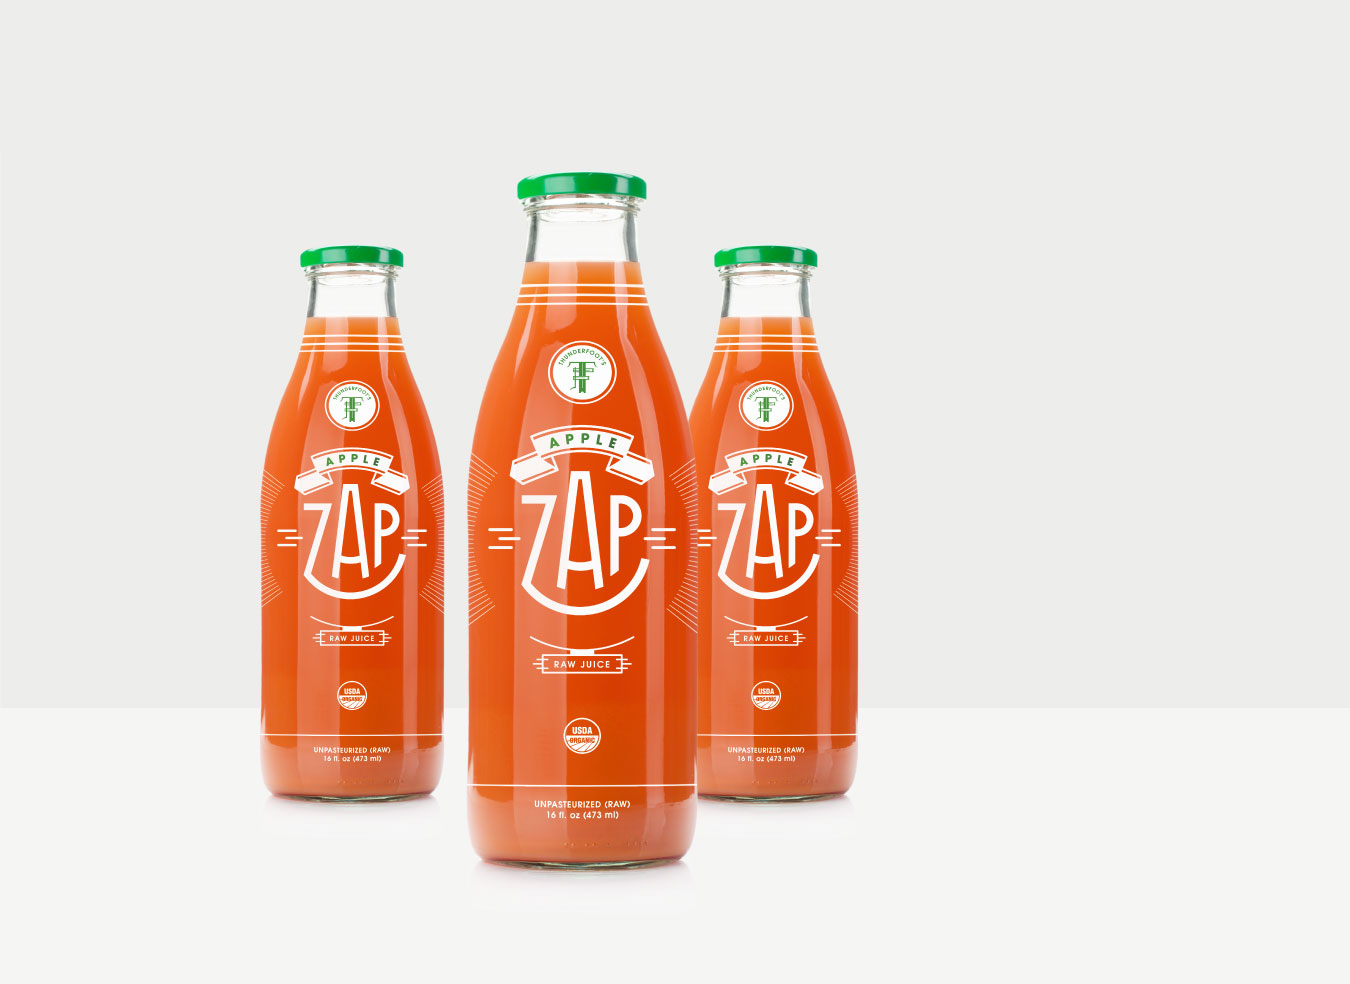 Apple Zap bottle design